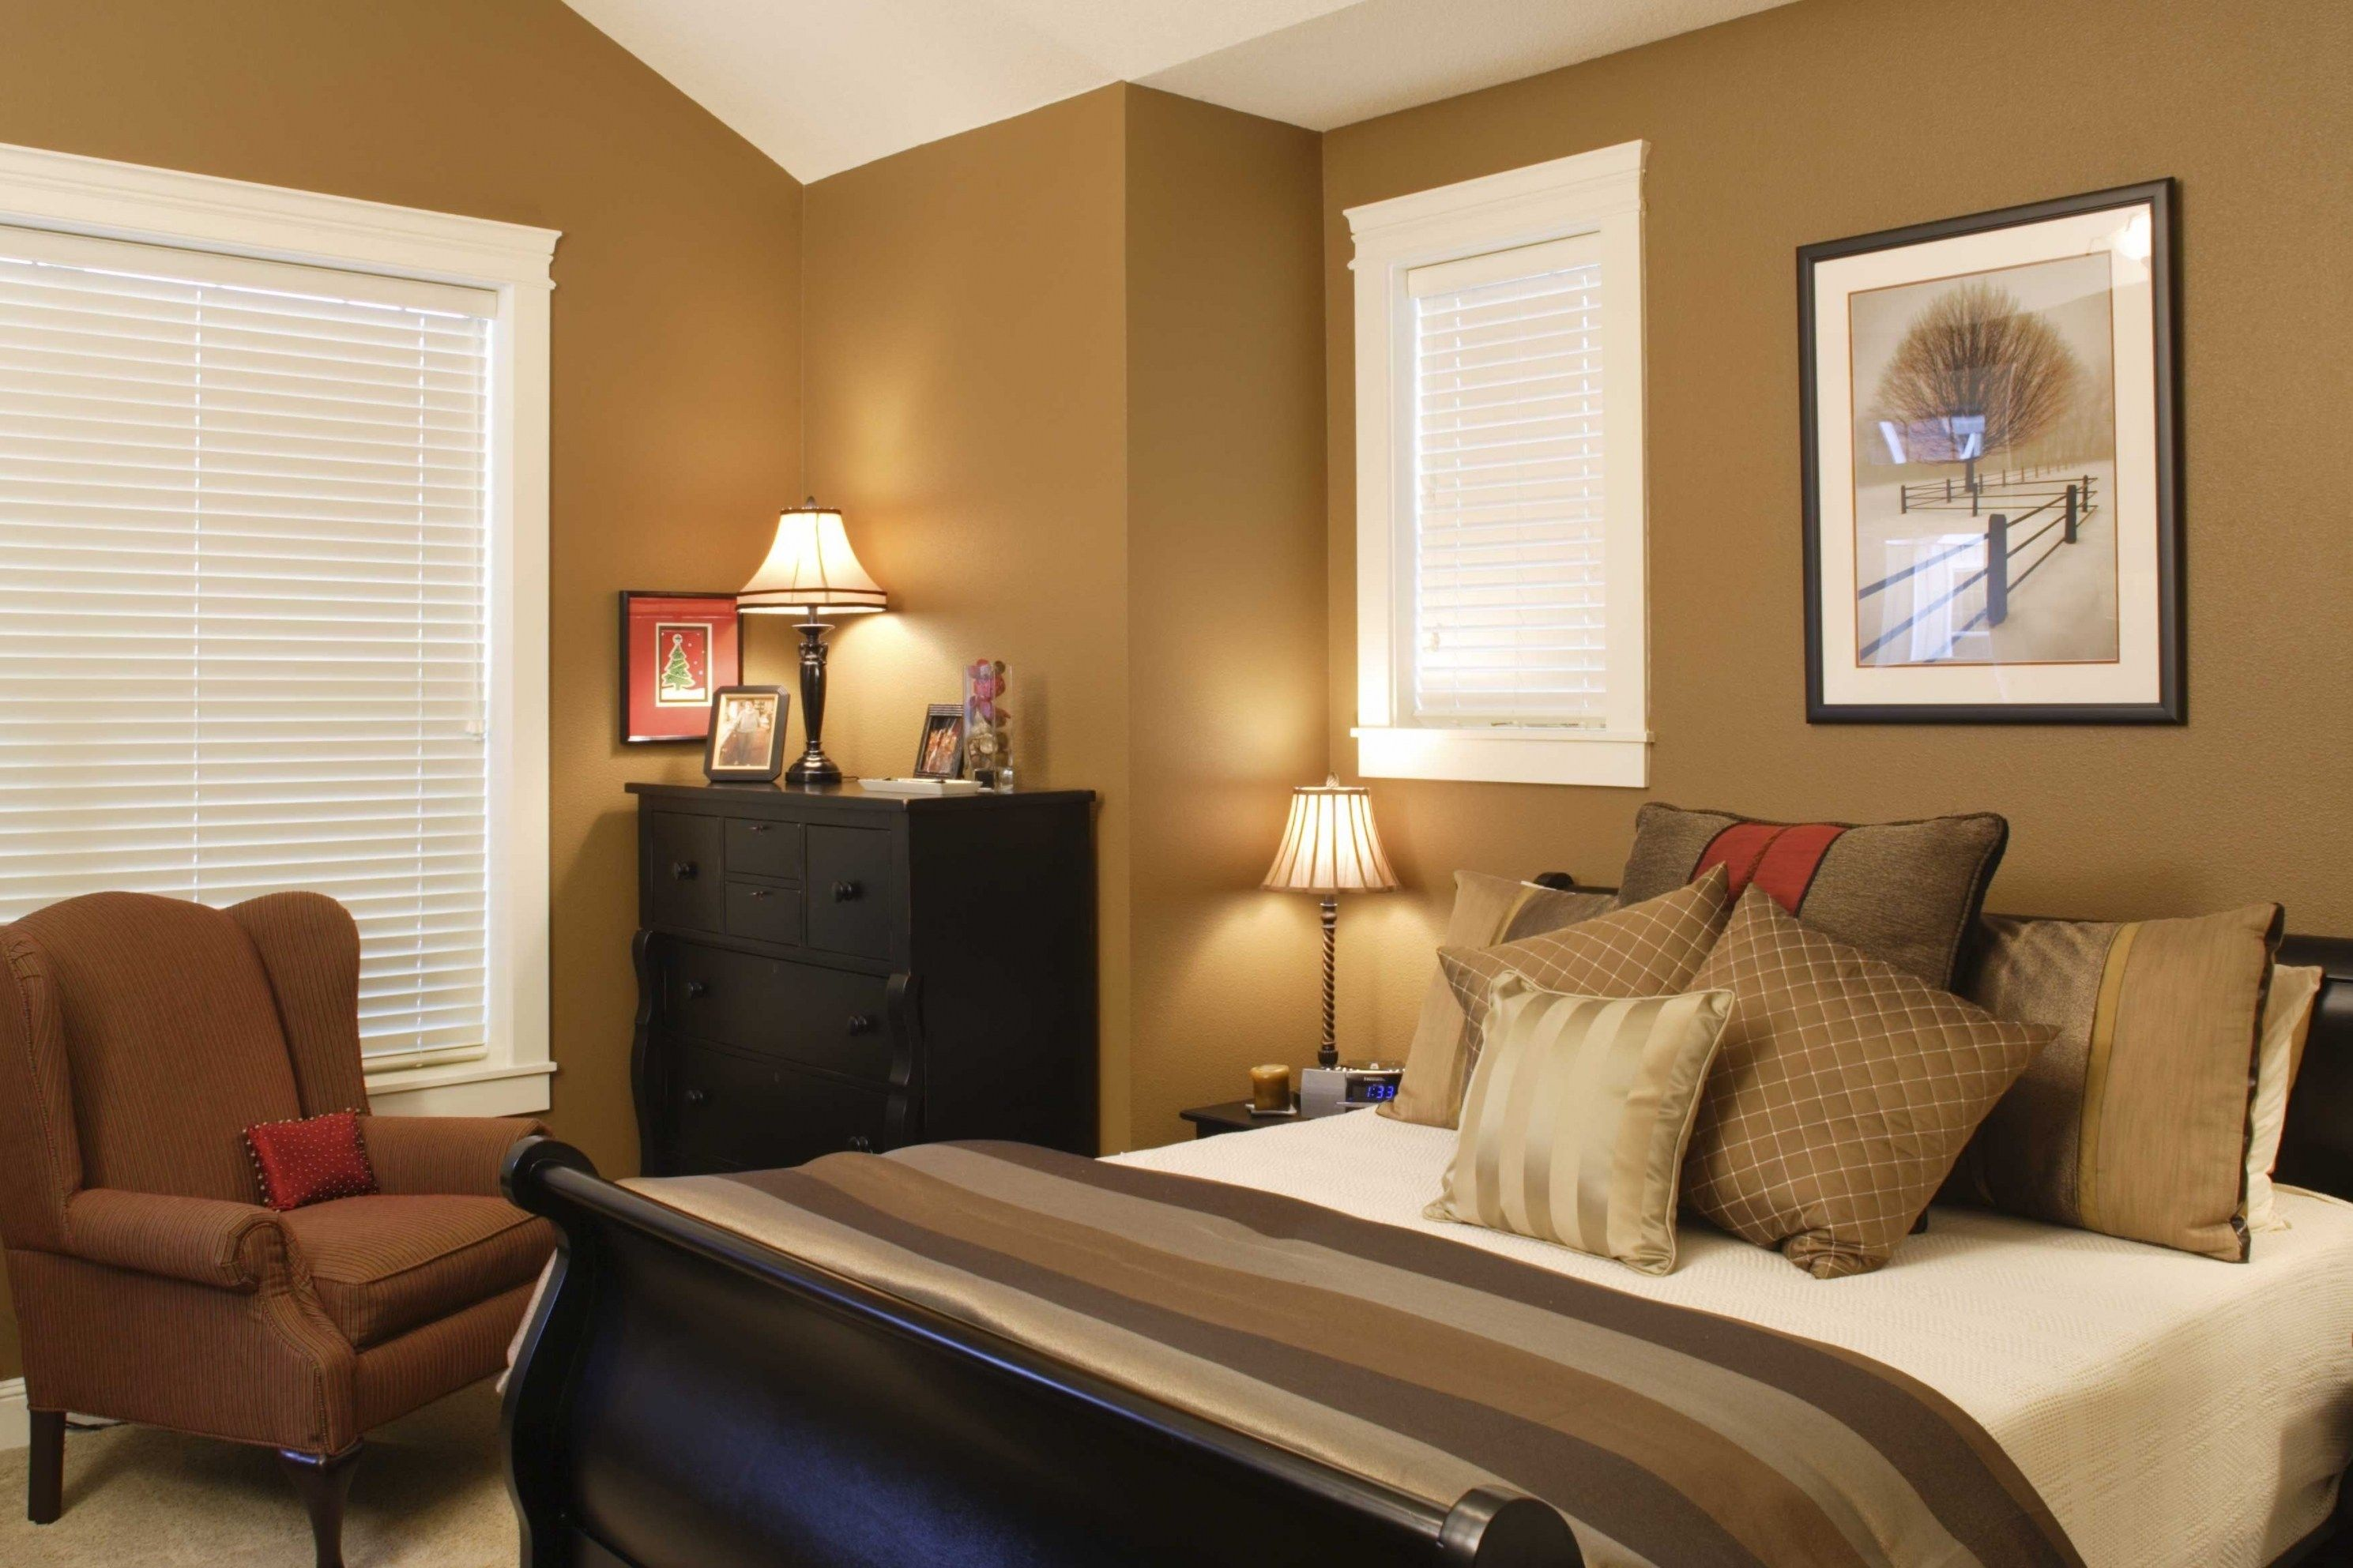 Top 10 Interior Painting Ideas For Small Rooms Top 10 Interior Painting  Ideas For Small Rooms